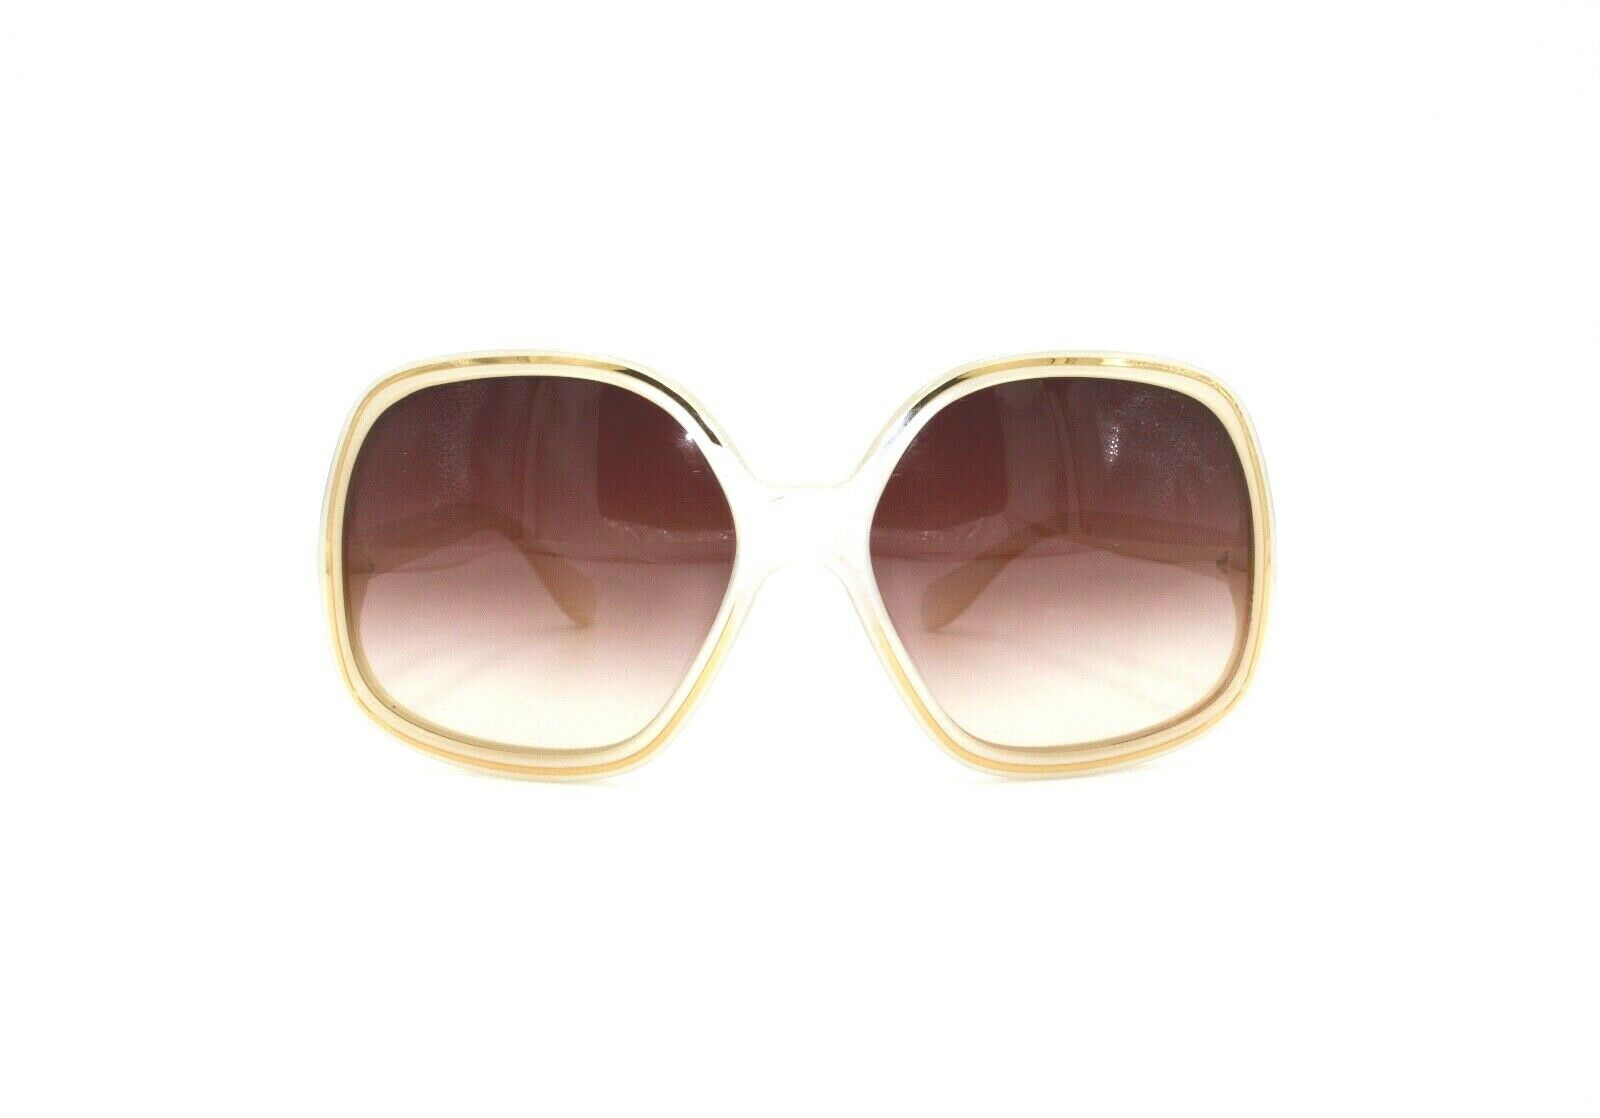 Oliver Peoples Sunglasses 61 17-135 Talya IS Made in Japan - Mydesigneroptic